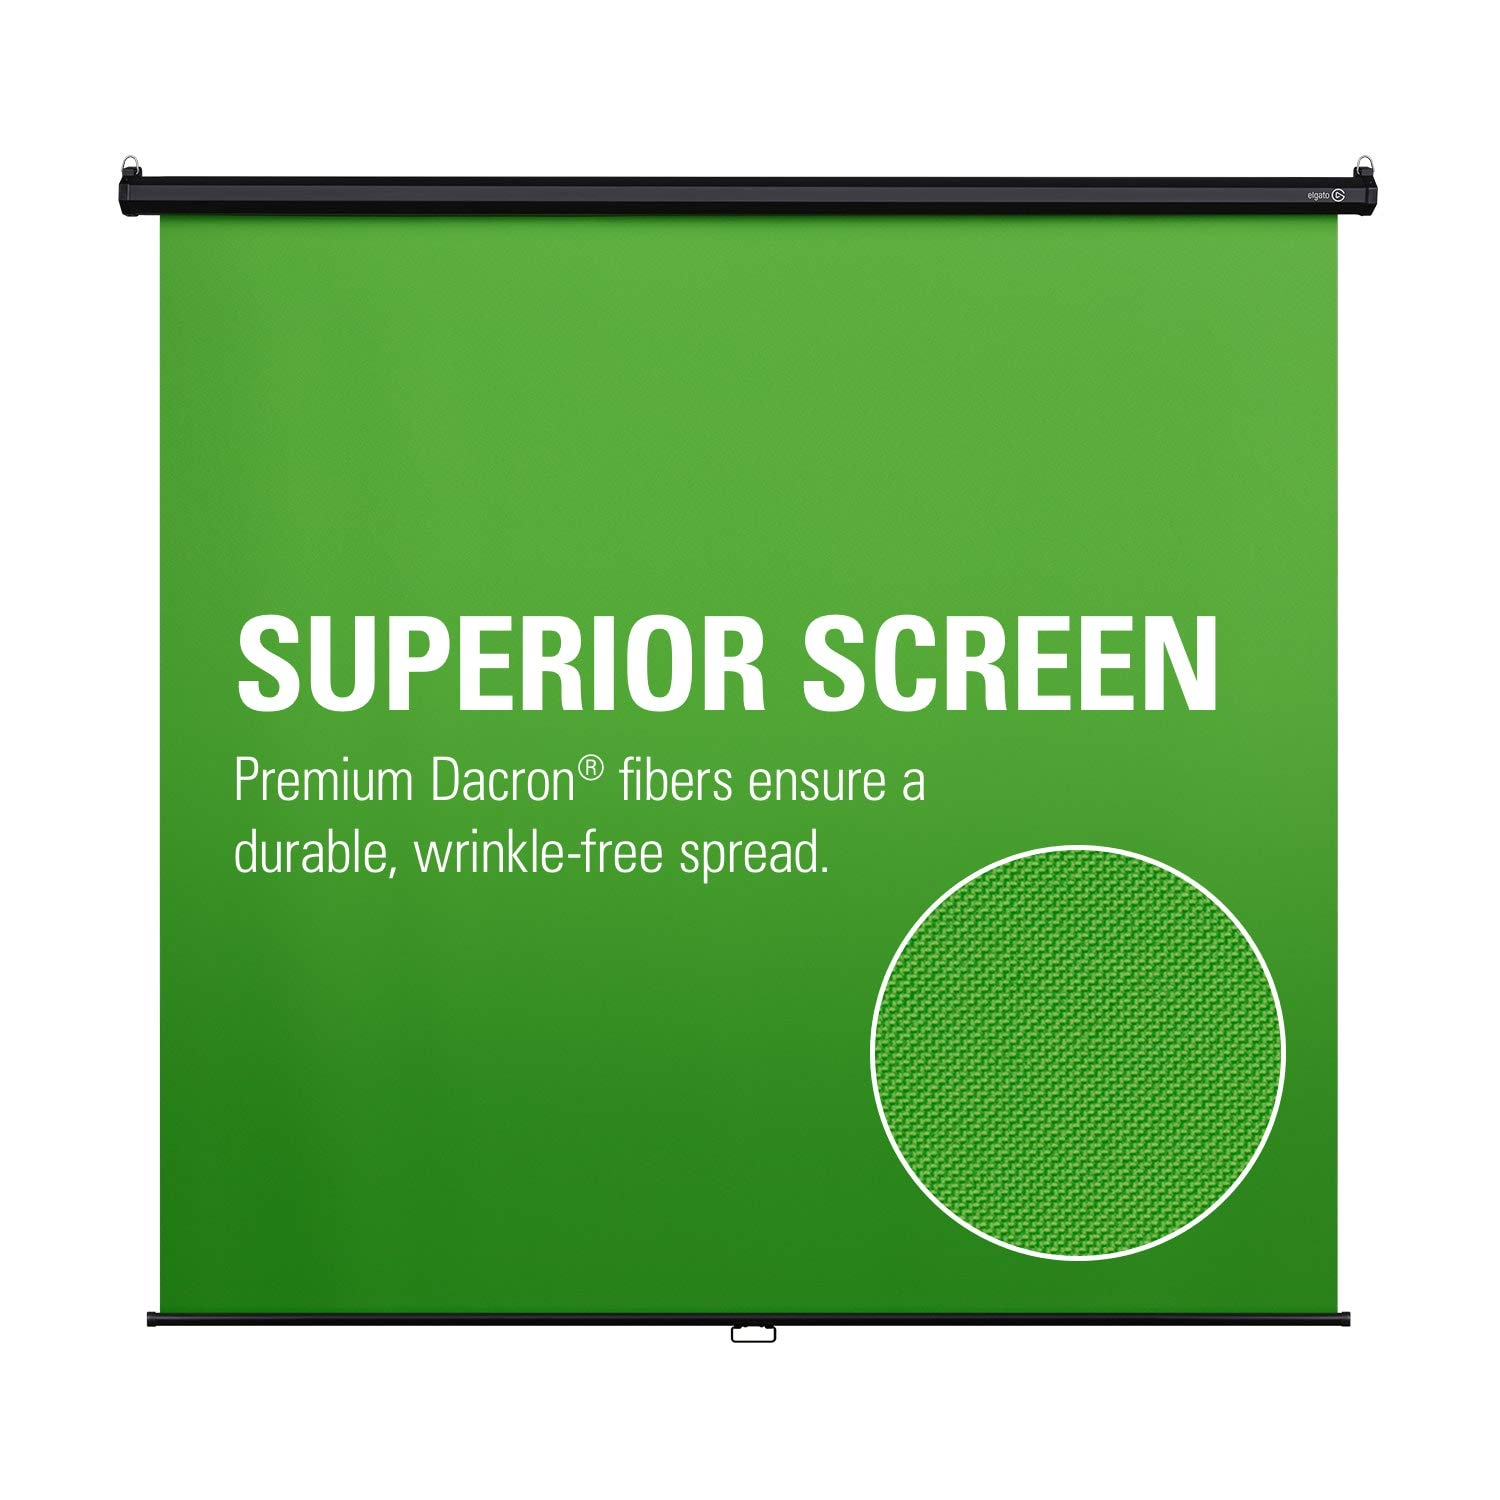 Corsair Elgato Green Screen MT - Mountable Chroma Key Panel for Background Removal, Wrinkle-Resistant Chroma-Green Fabric by Corsair (Image #3)